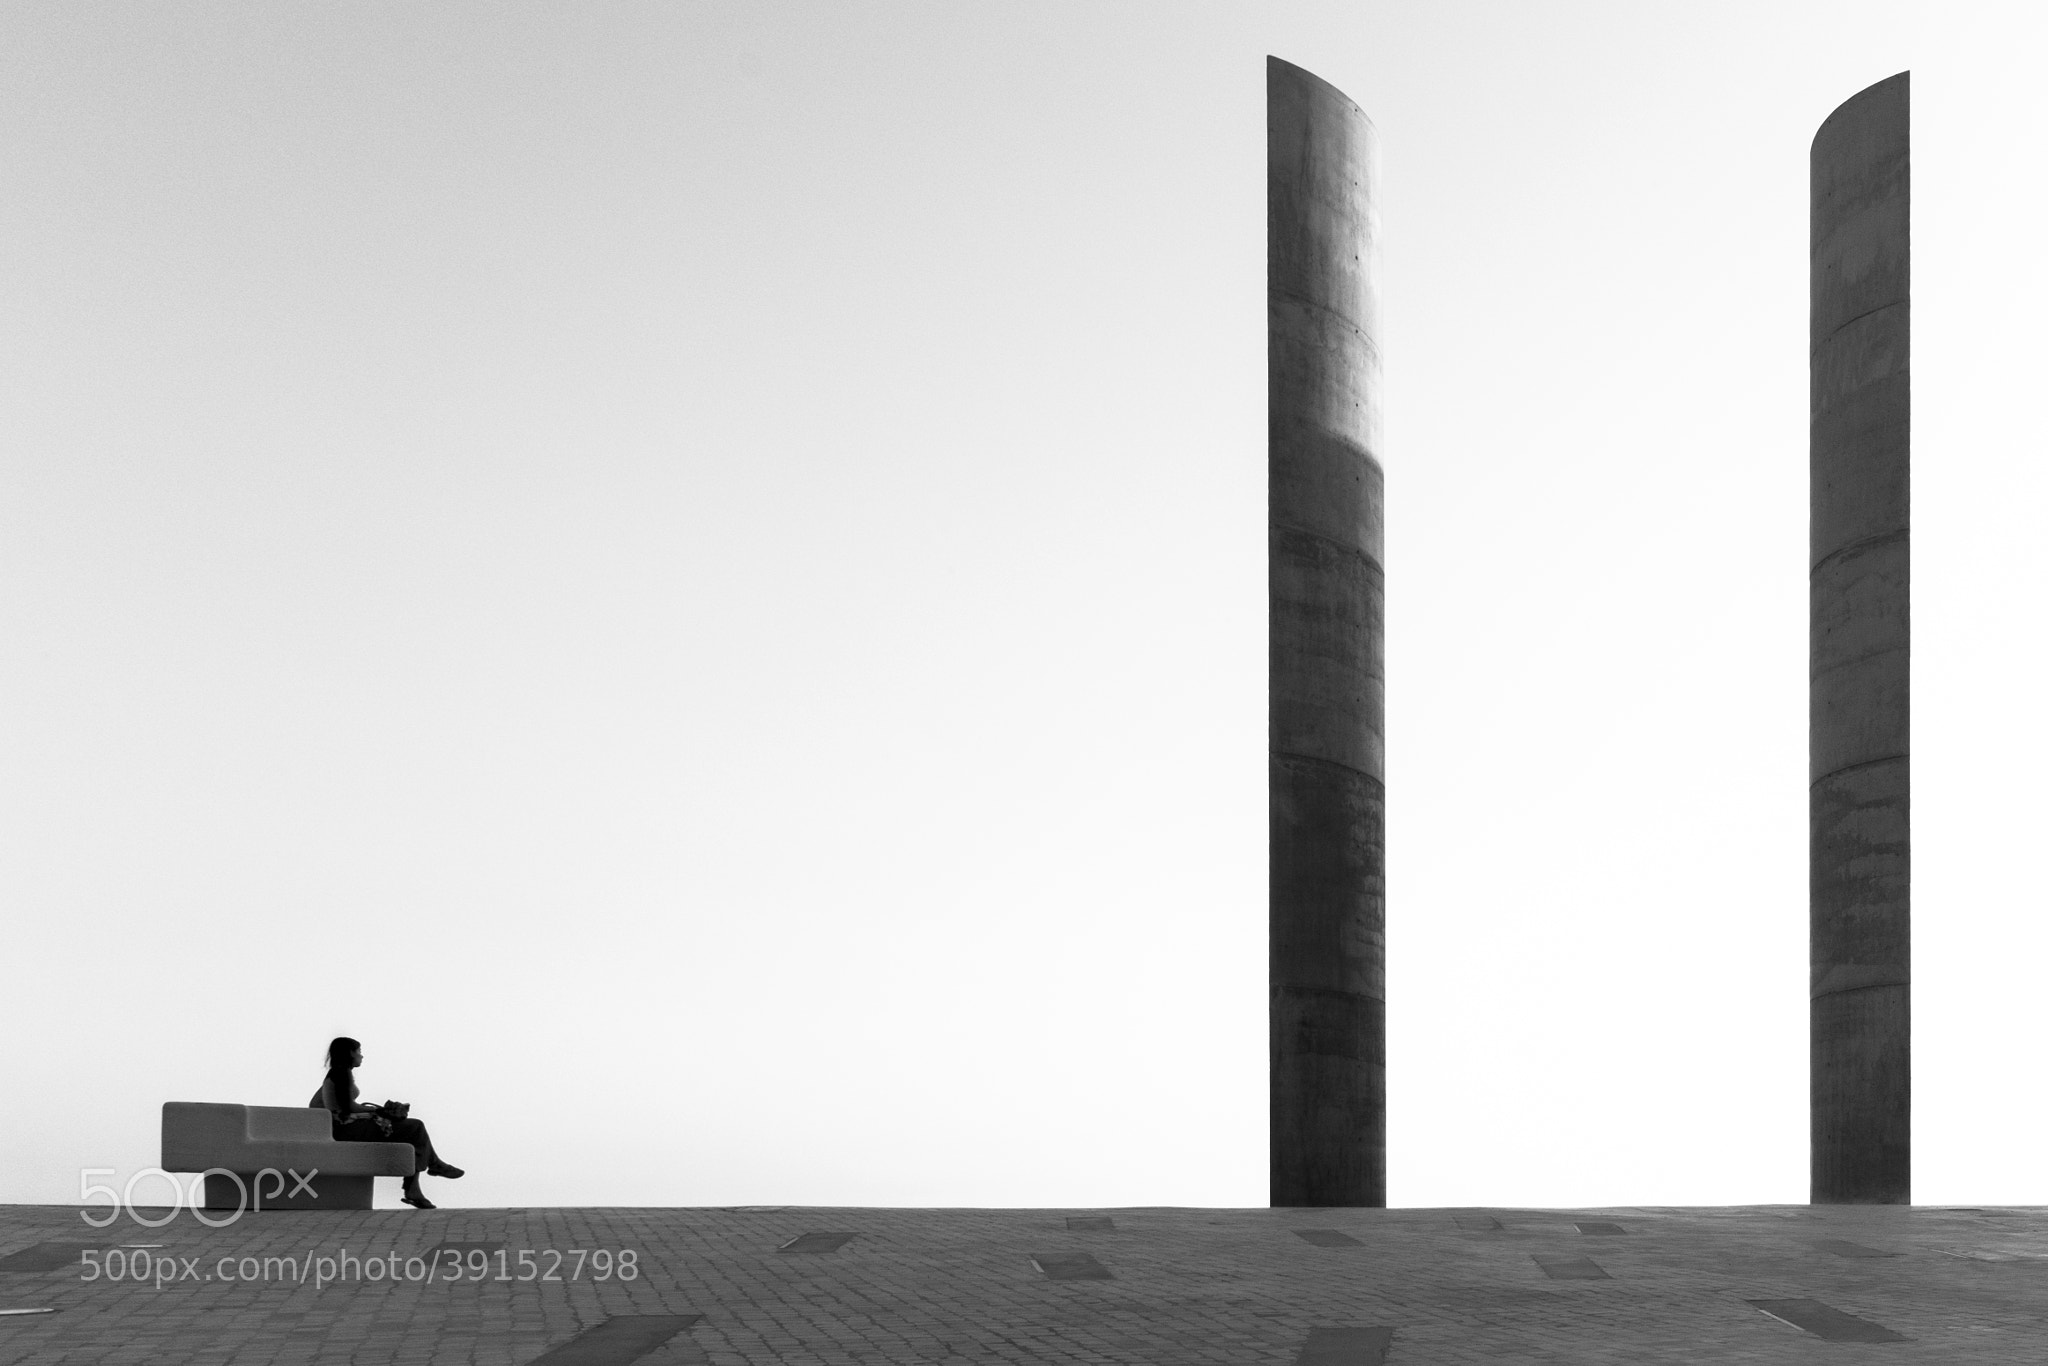 Photograph Contemplation by Fernando Coelho on 500px